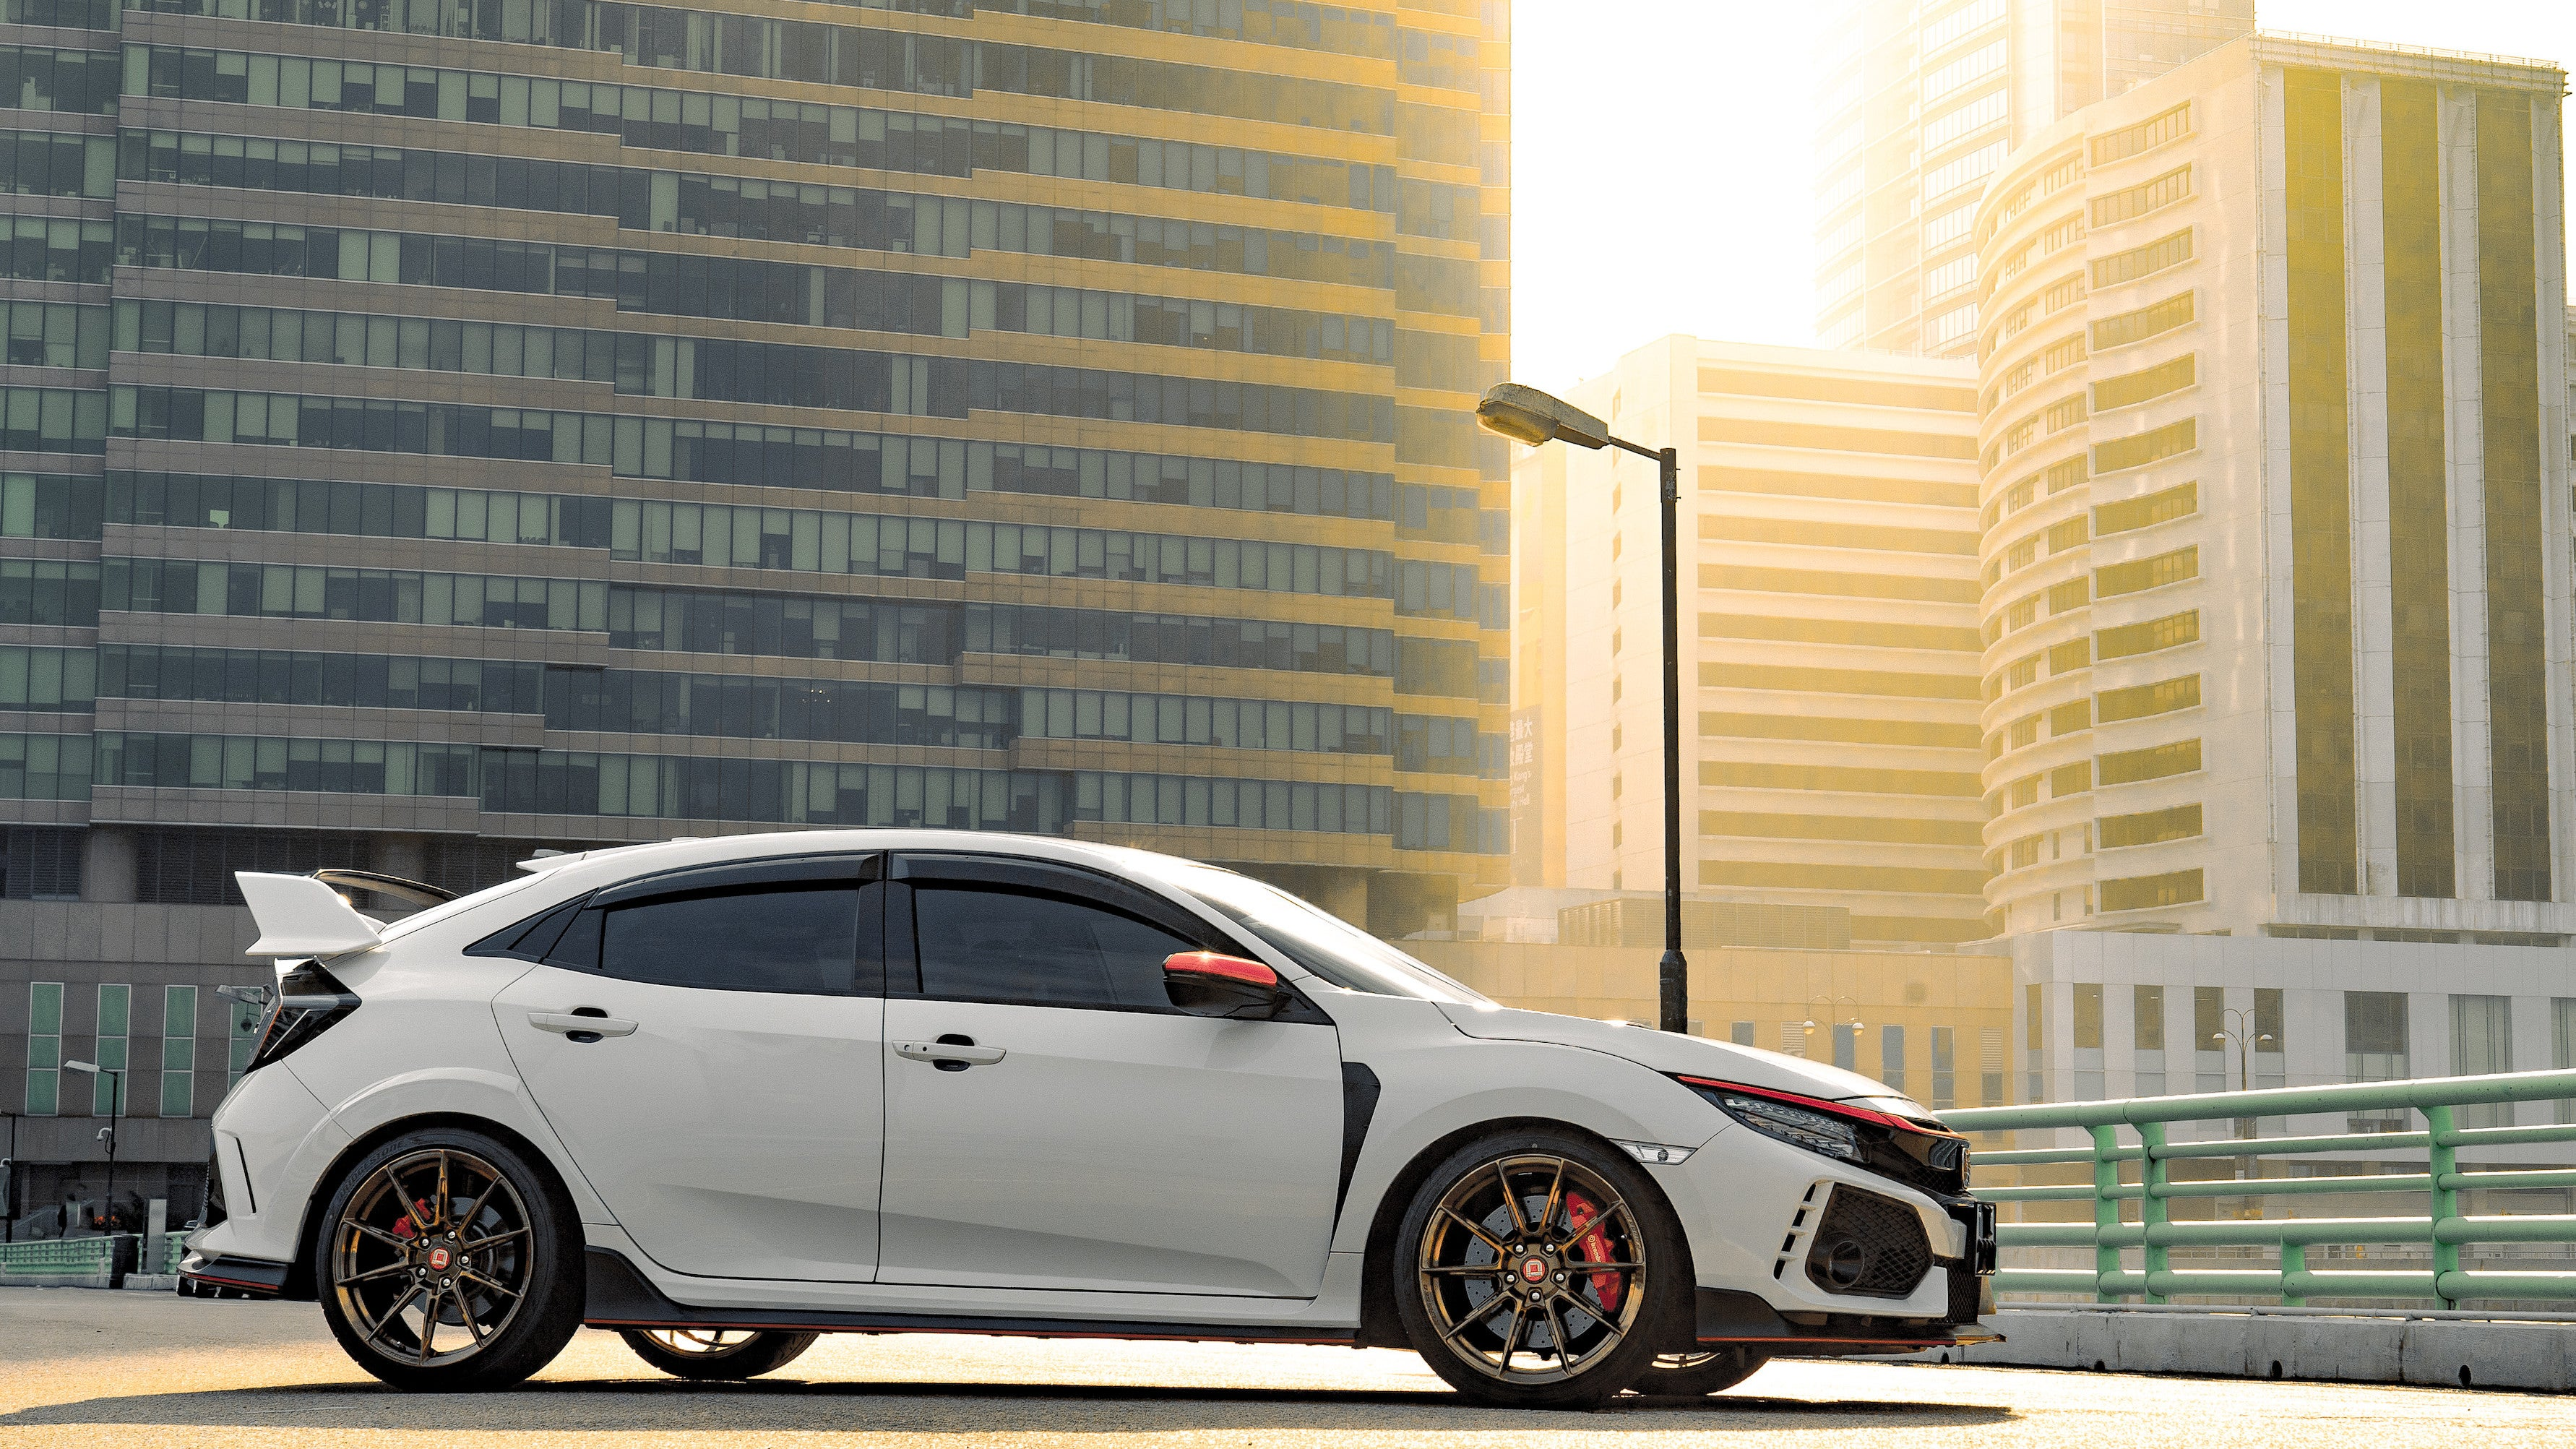 Your Ridiculously Awesome Sunny Honda Civic Type R Wallpaper Is Here